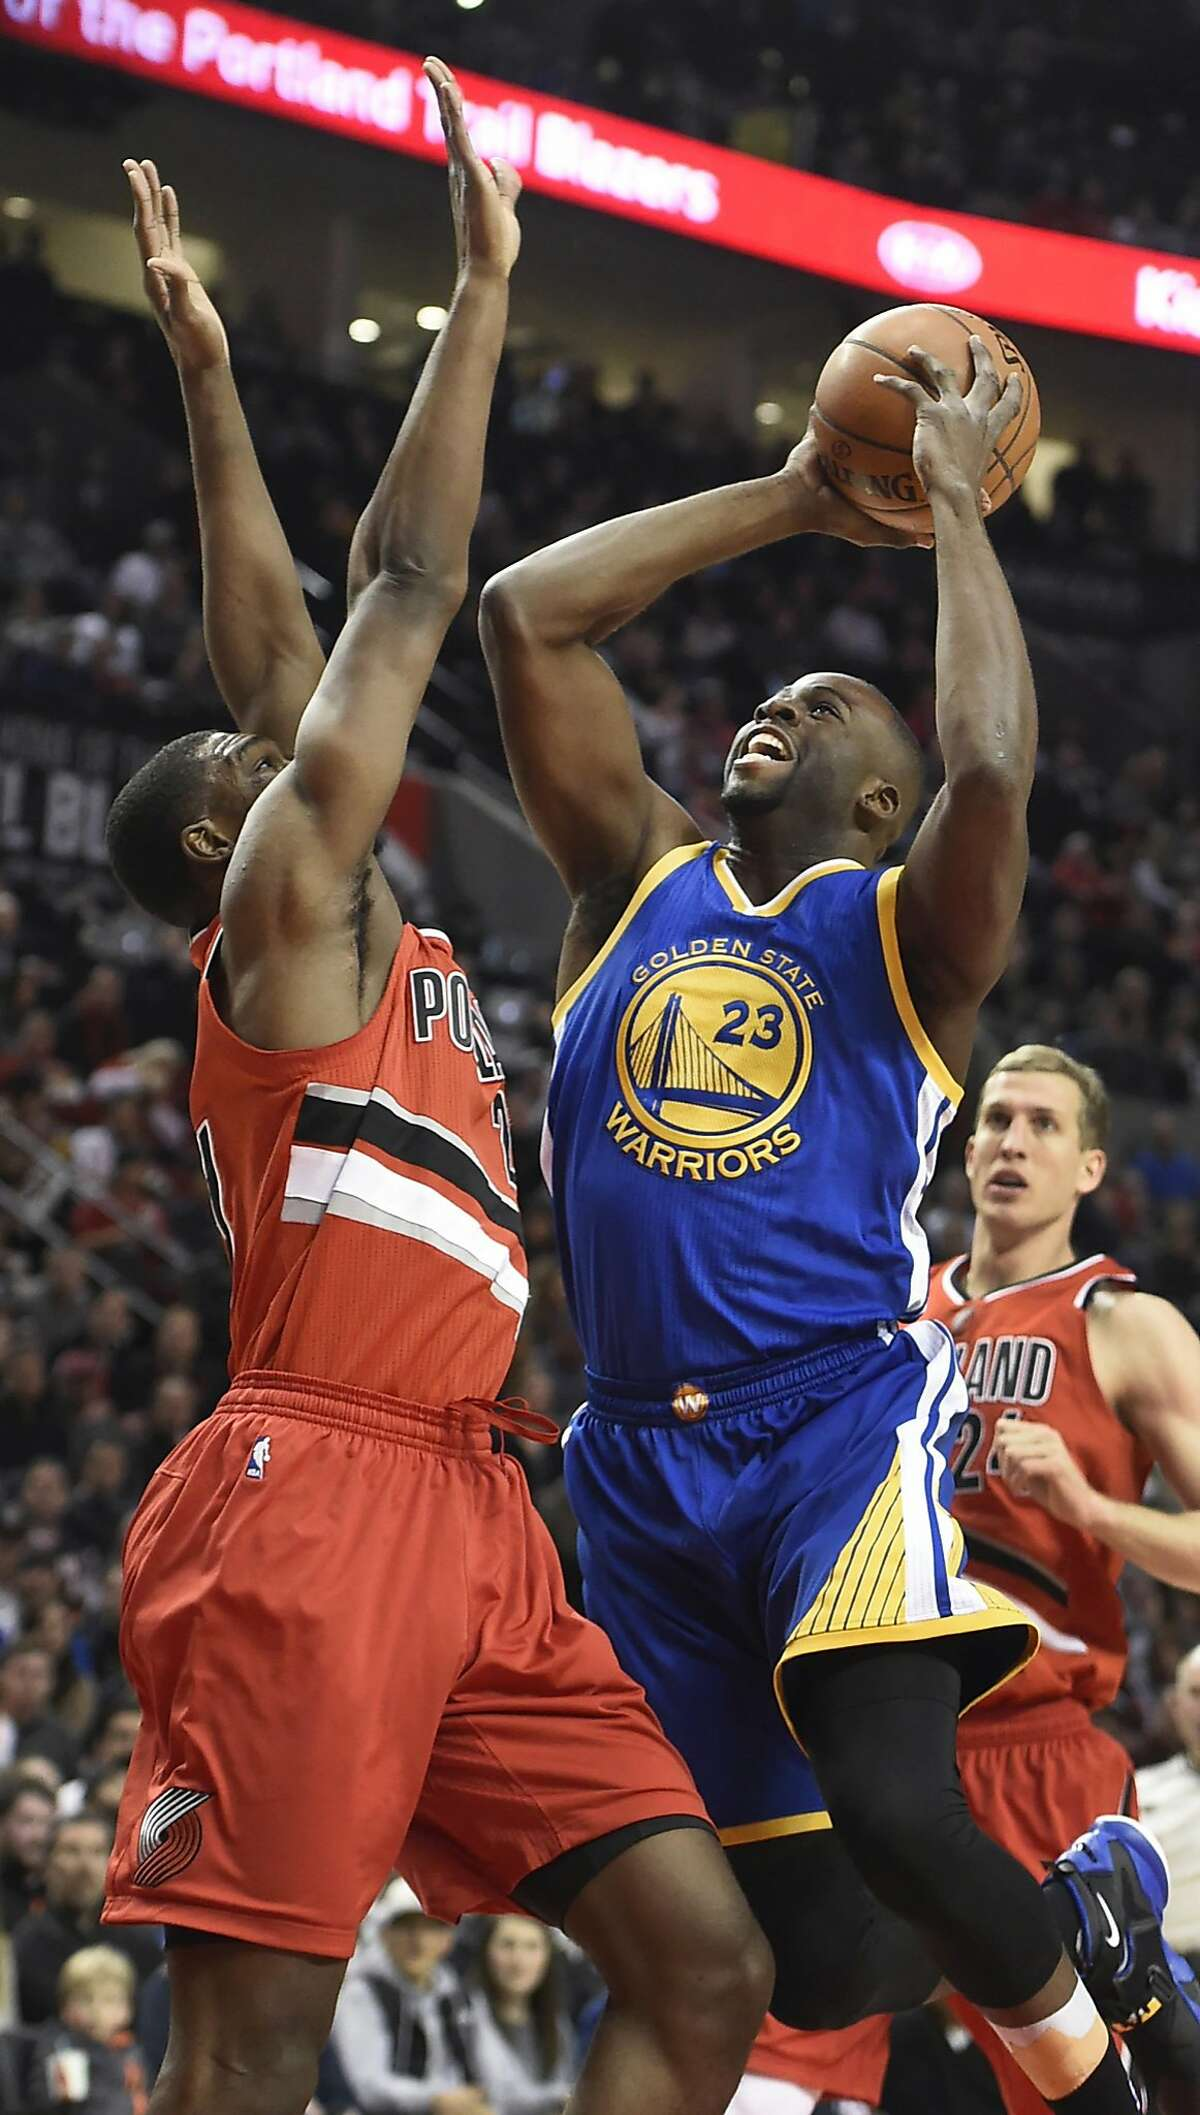 Golden State Warriors forward Draymond Green (23) drives to the basket on Portland Trail Blazers forward Noah Vonleh, left, during the first half of an NBA basketball game in Portland, Ore., Friday, Jan. 8, 2016. (AP Photo/Steve Dykes)